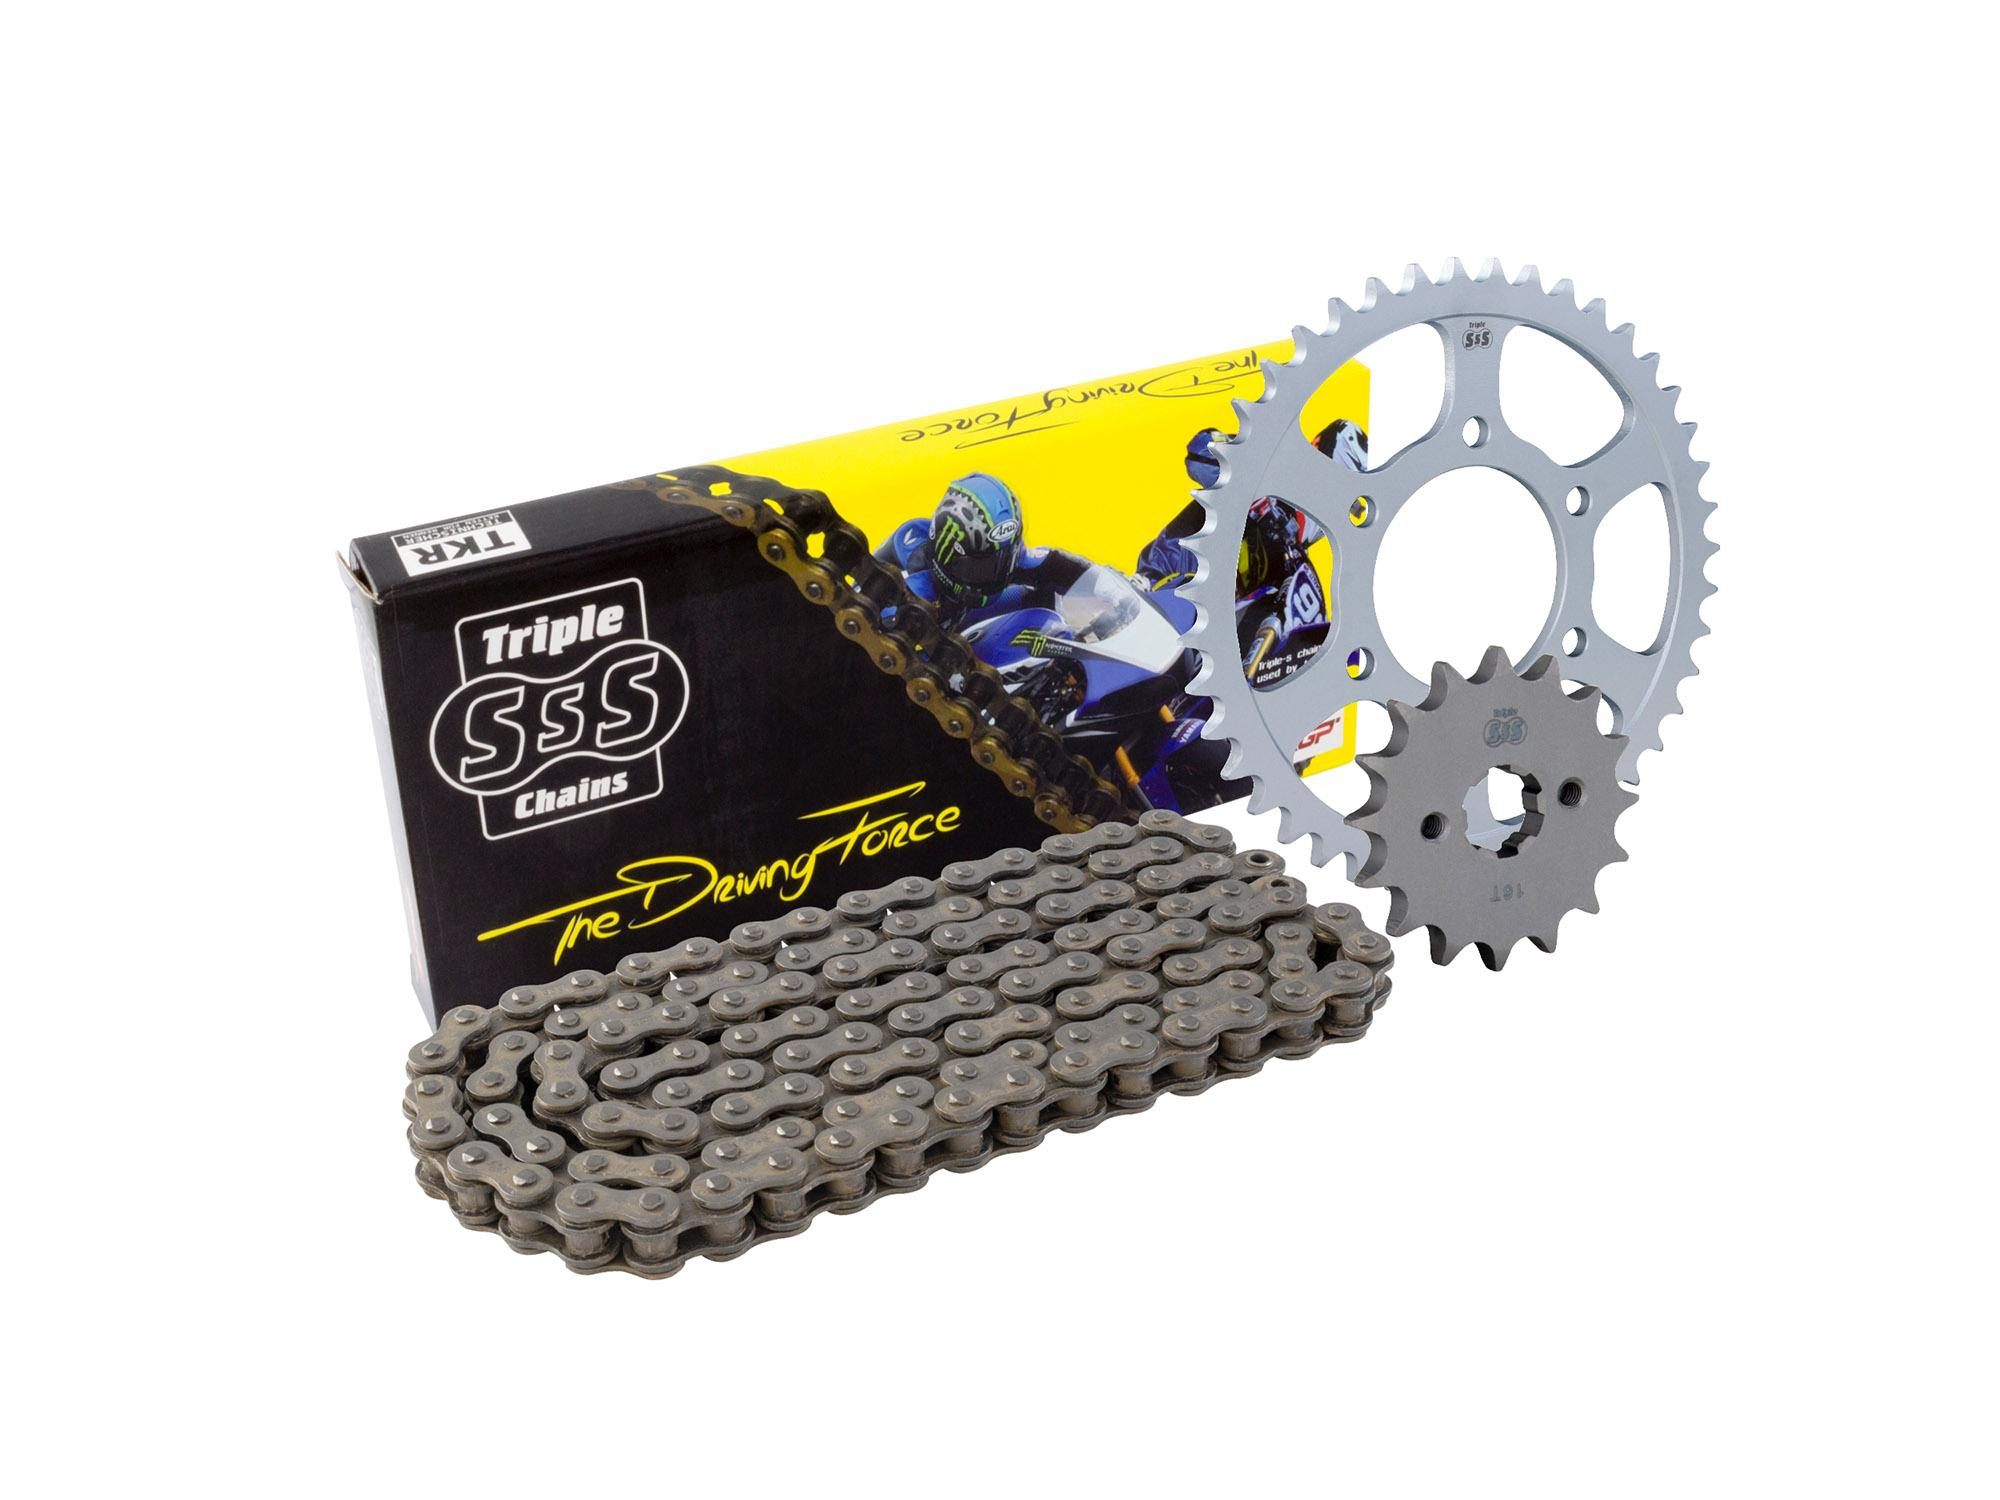 Kawasaki GPZ500 S D1-12 94-05 Chain & Sprocket Kit: 16T Front, 41T Rear, HD O-Ring Black Chain 520H 104Link